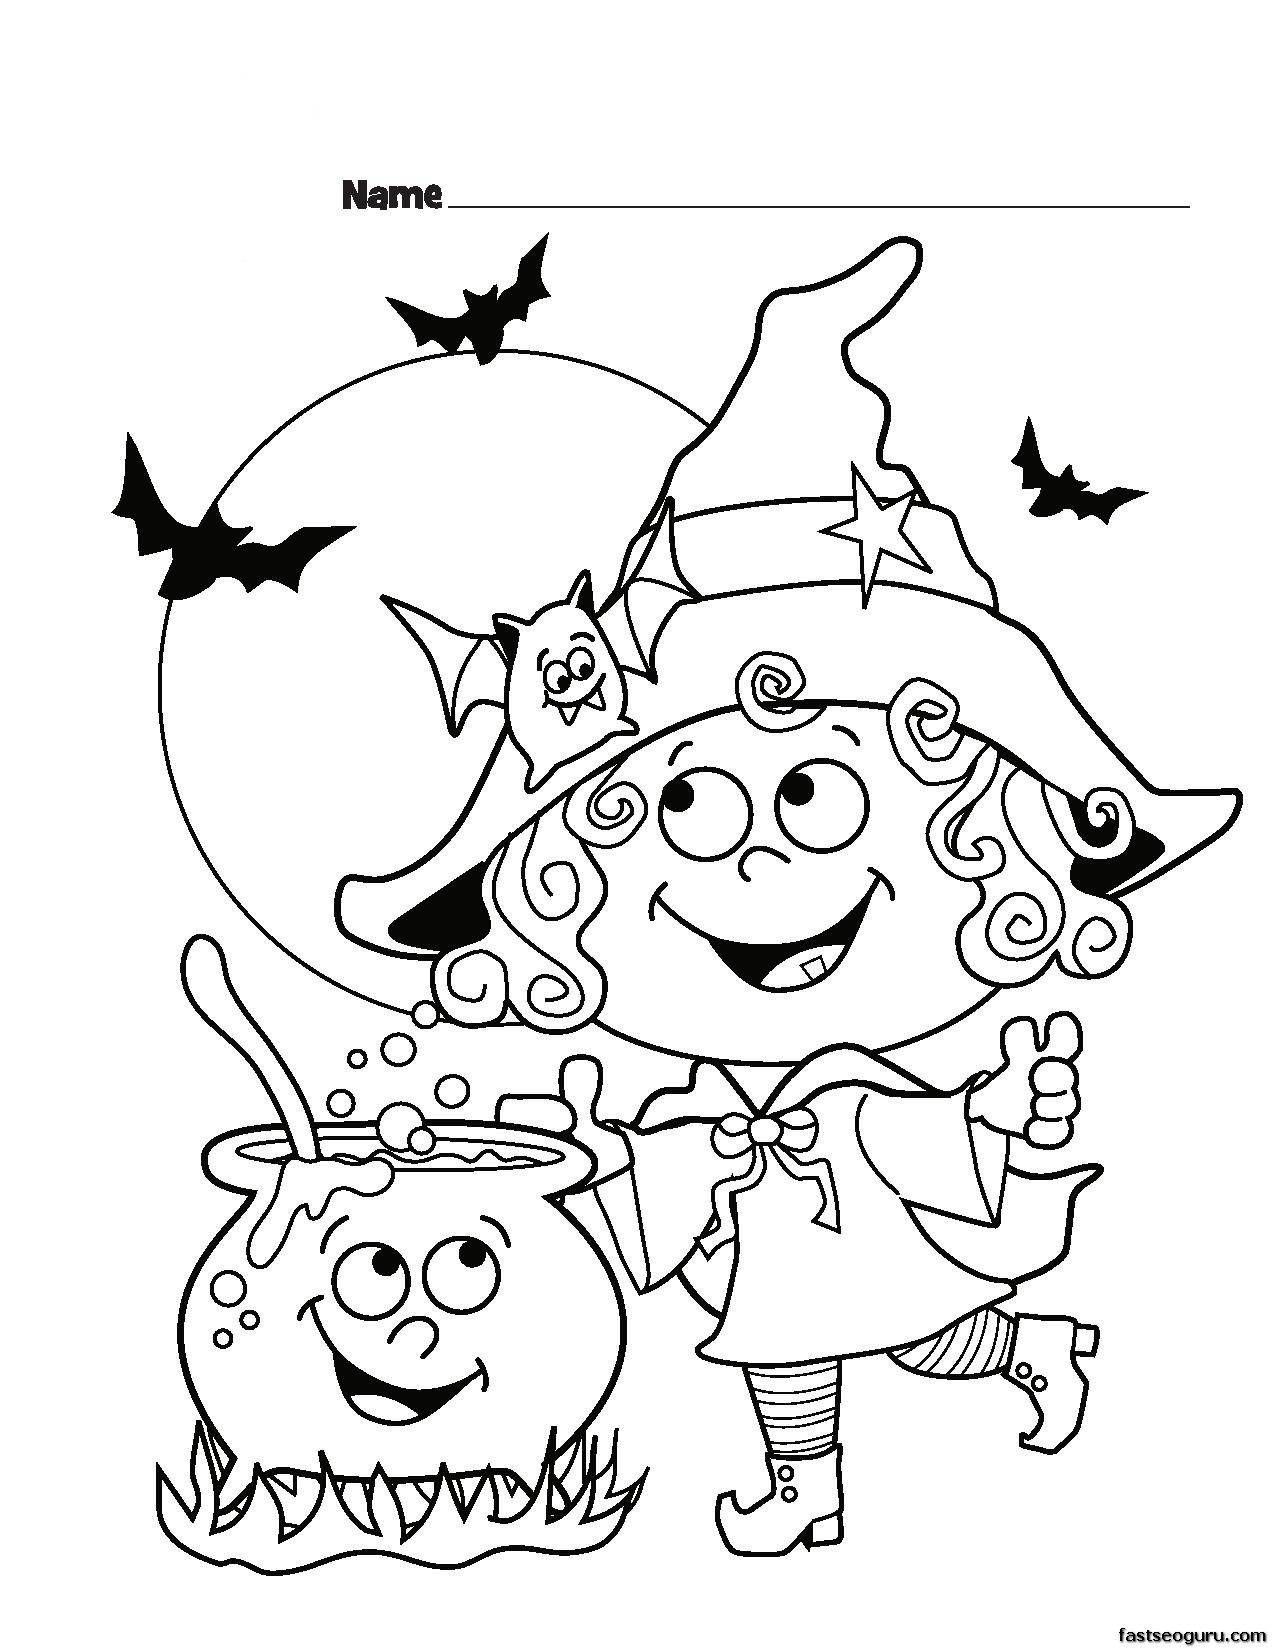 Lol Doll Luxe Coloring Page Free Printable Coloring Pages Unicorn Coloring Pages Animal Coloring Pages Princess Coloring Pages